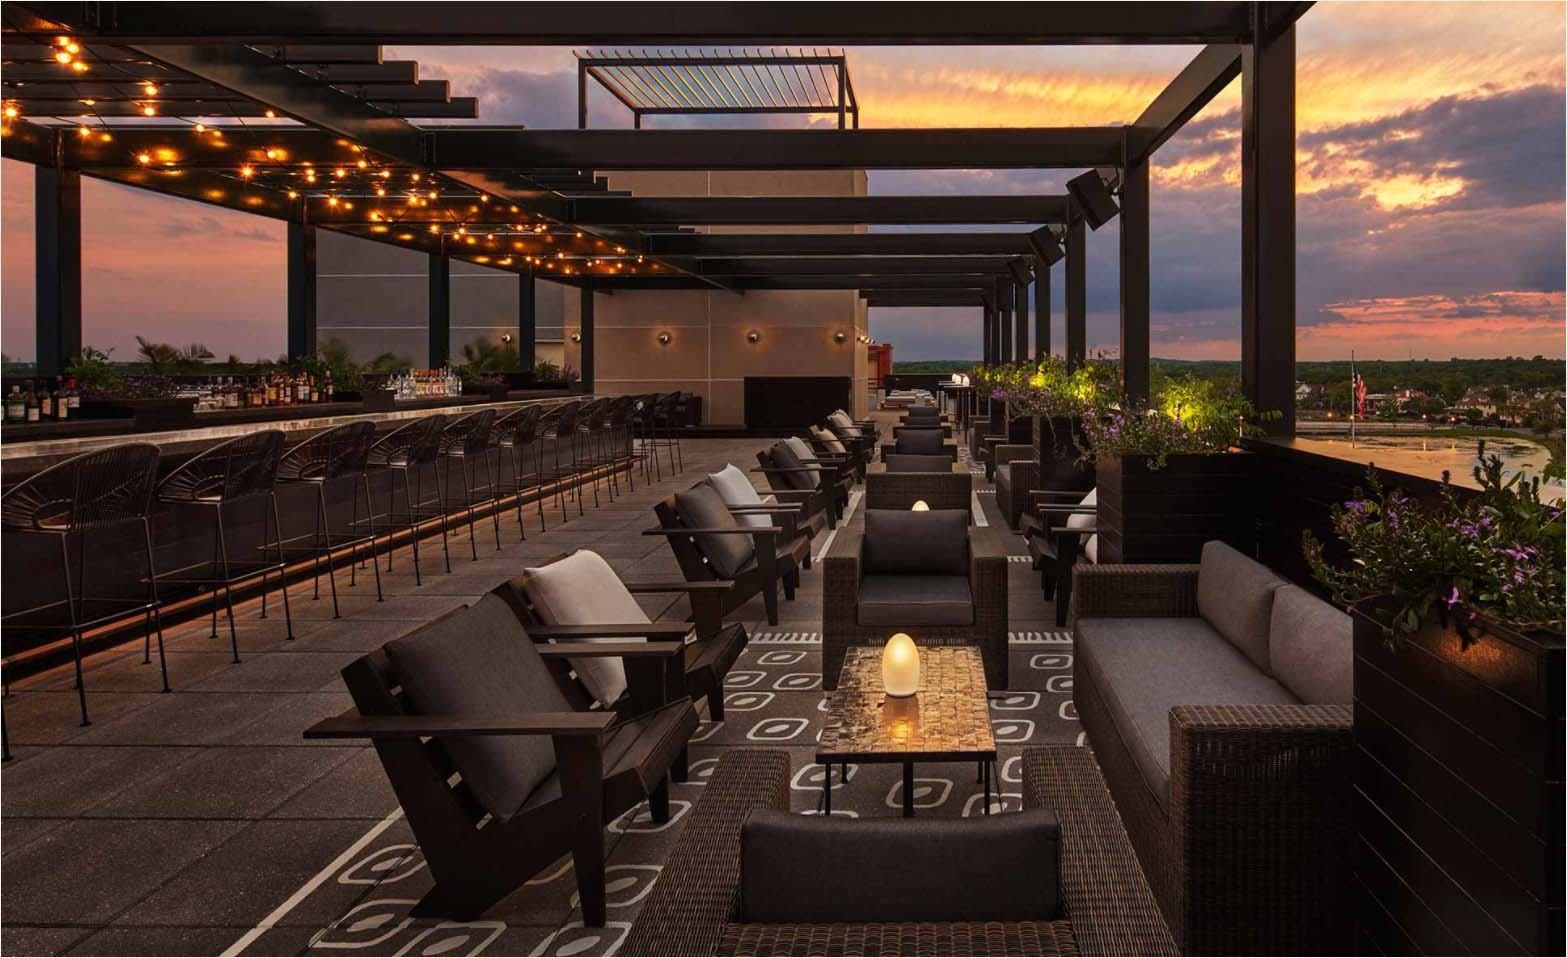 East Coast Hotels Rooftop Bars Perfect Summer